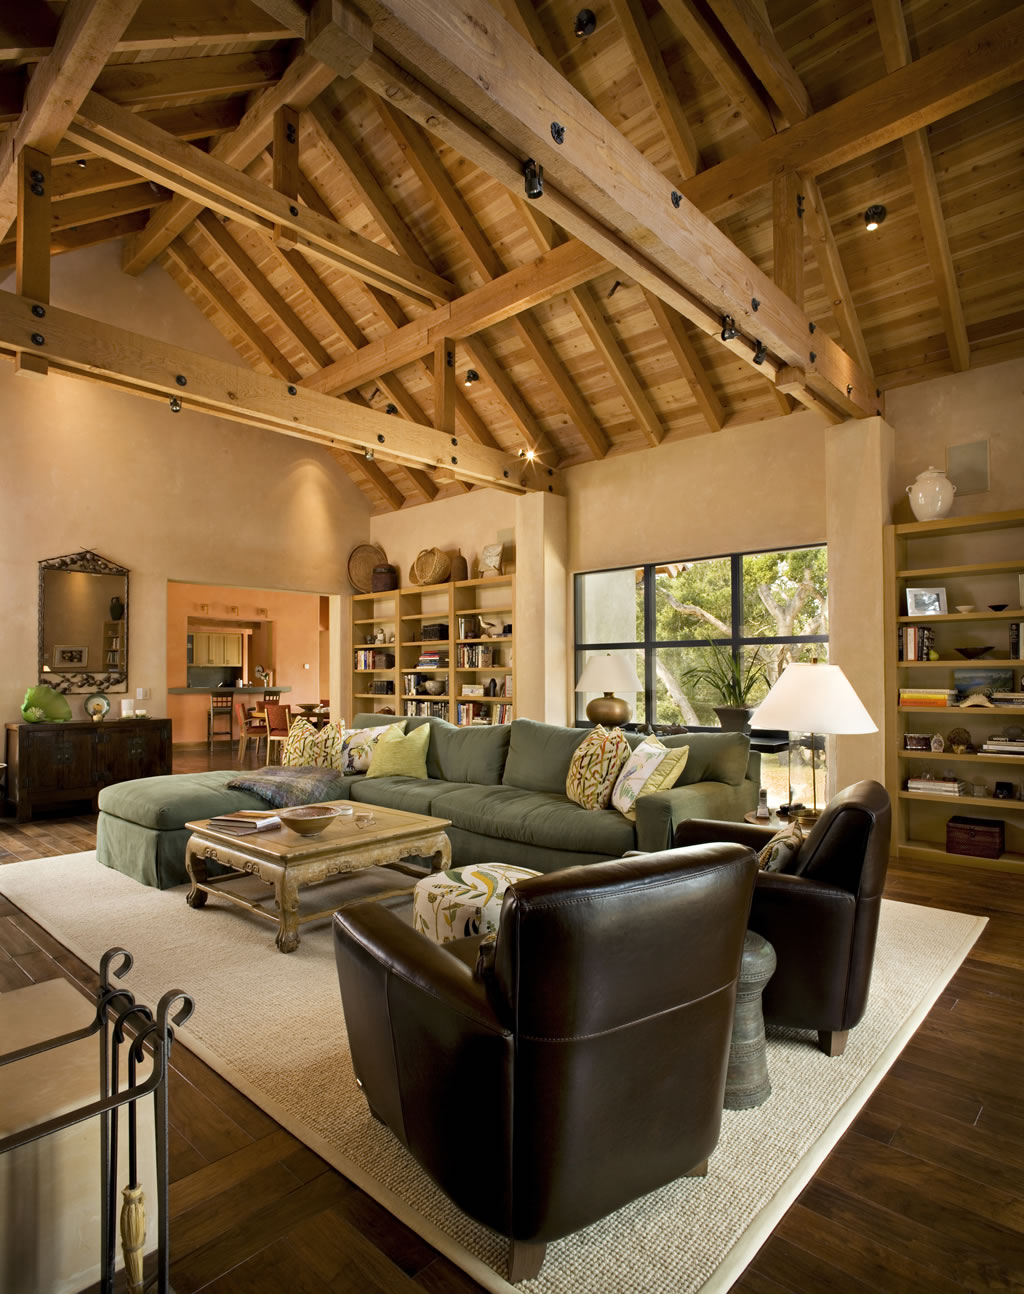 rustic contemporary carmel building design carmel ca rustic contemporary